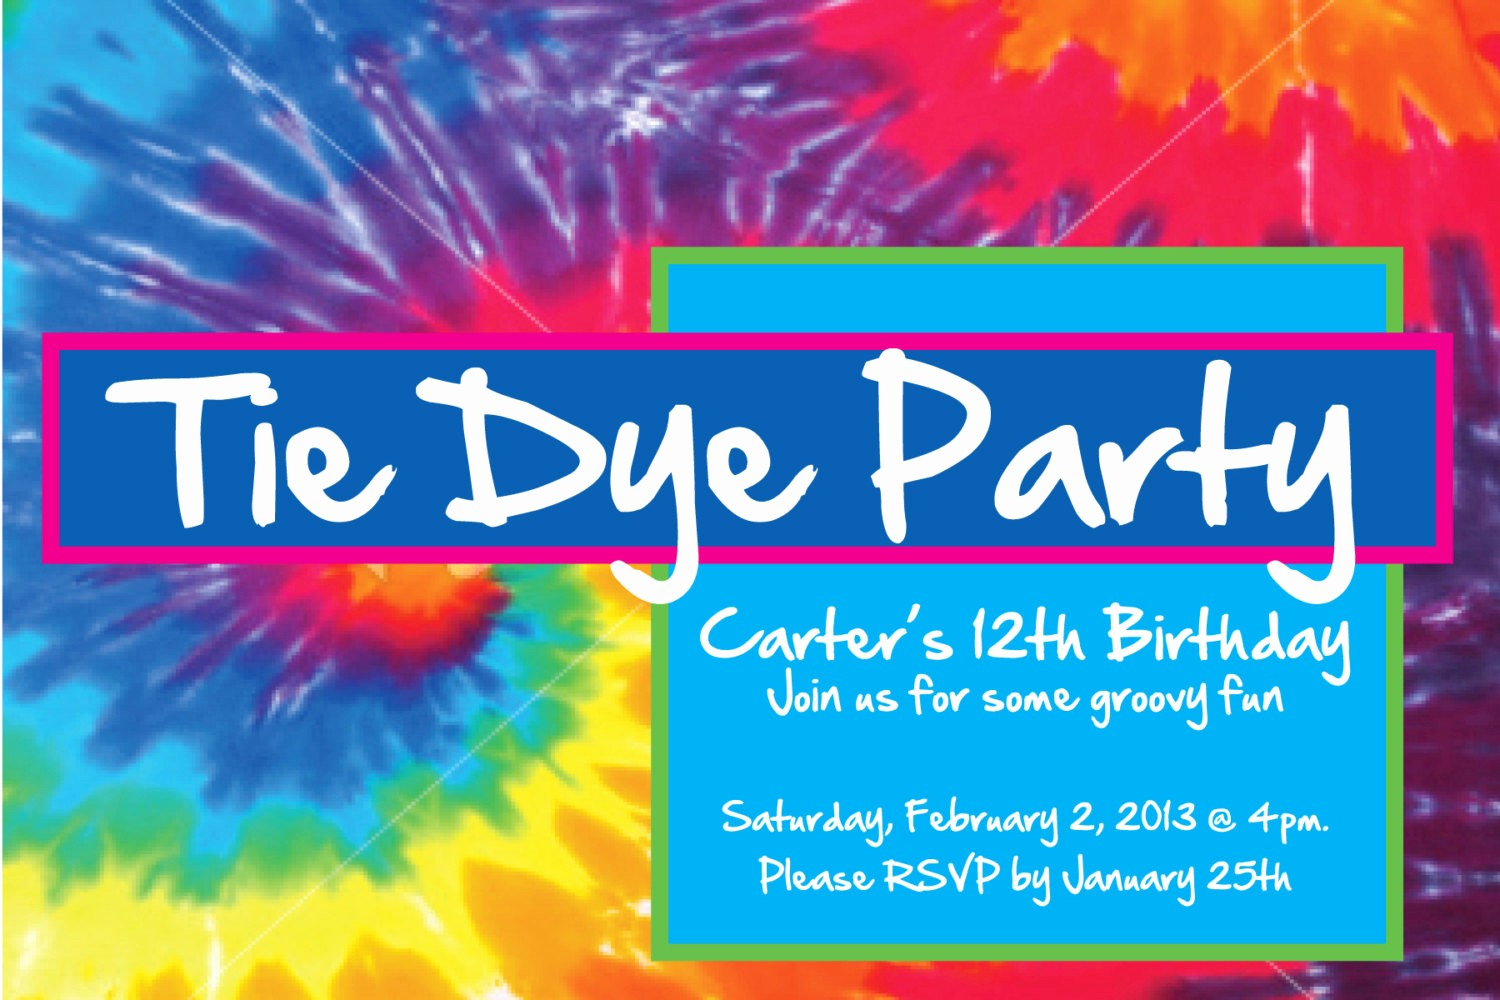 Tie Dye Happy Birthday Images Awesome Tie Dye Party Invitation Tiedye Party Invitation Digital